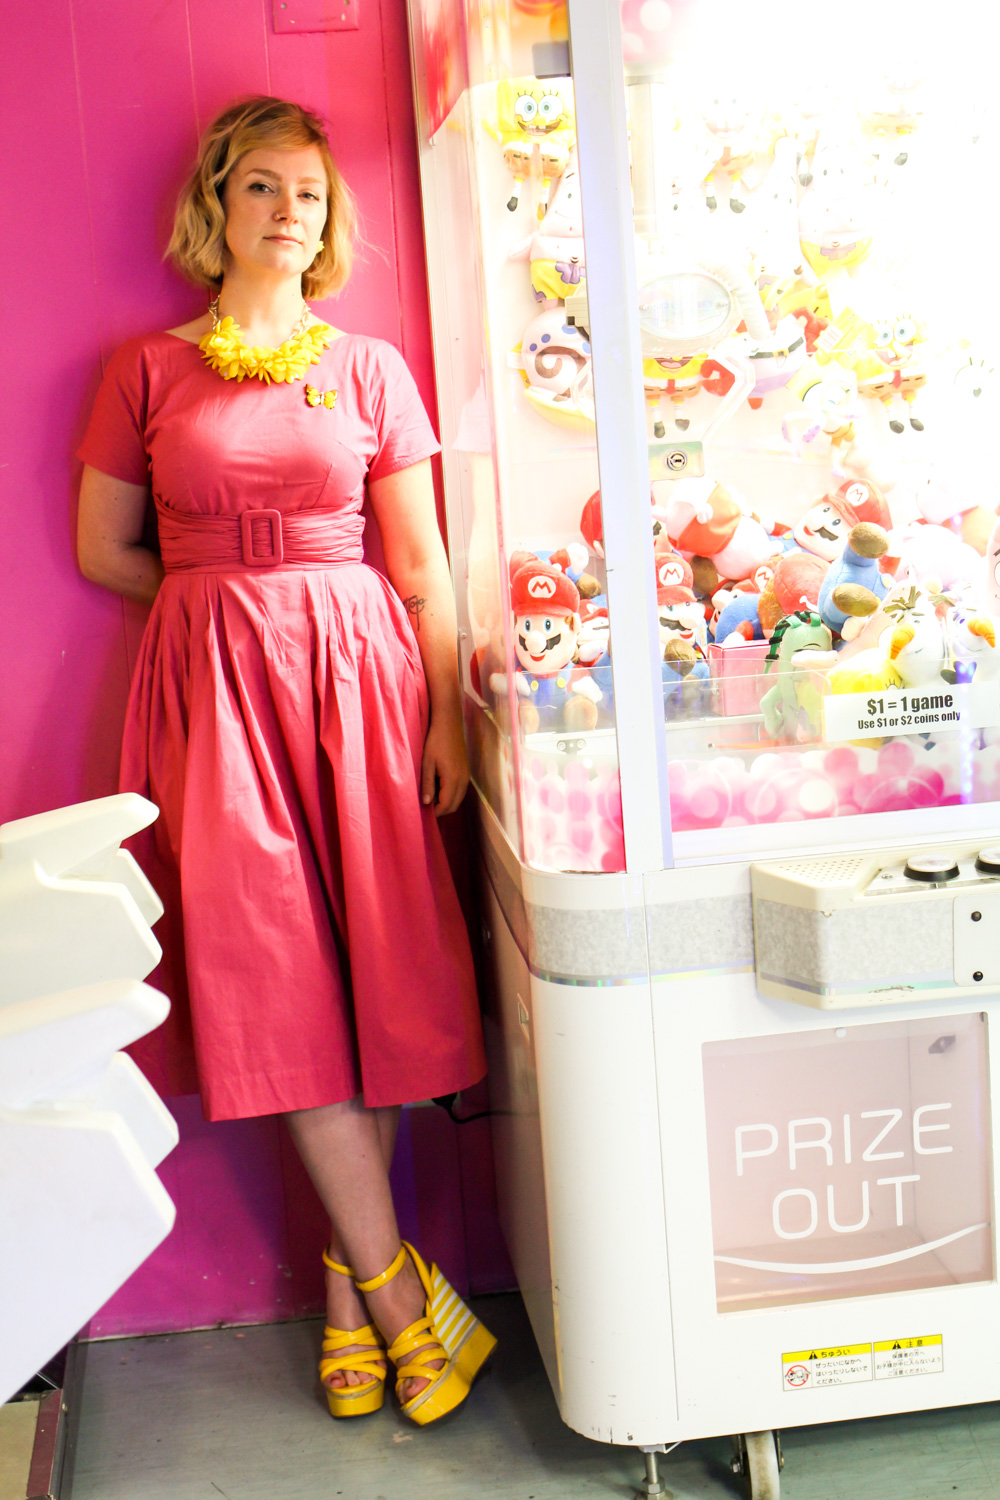 @findingfemme wears pink Lazybones dress to the arcade.